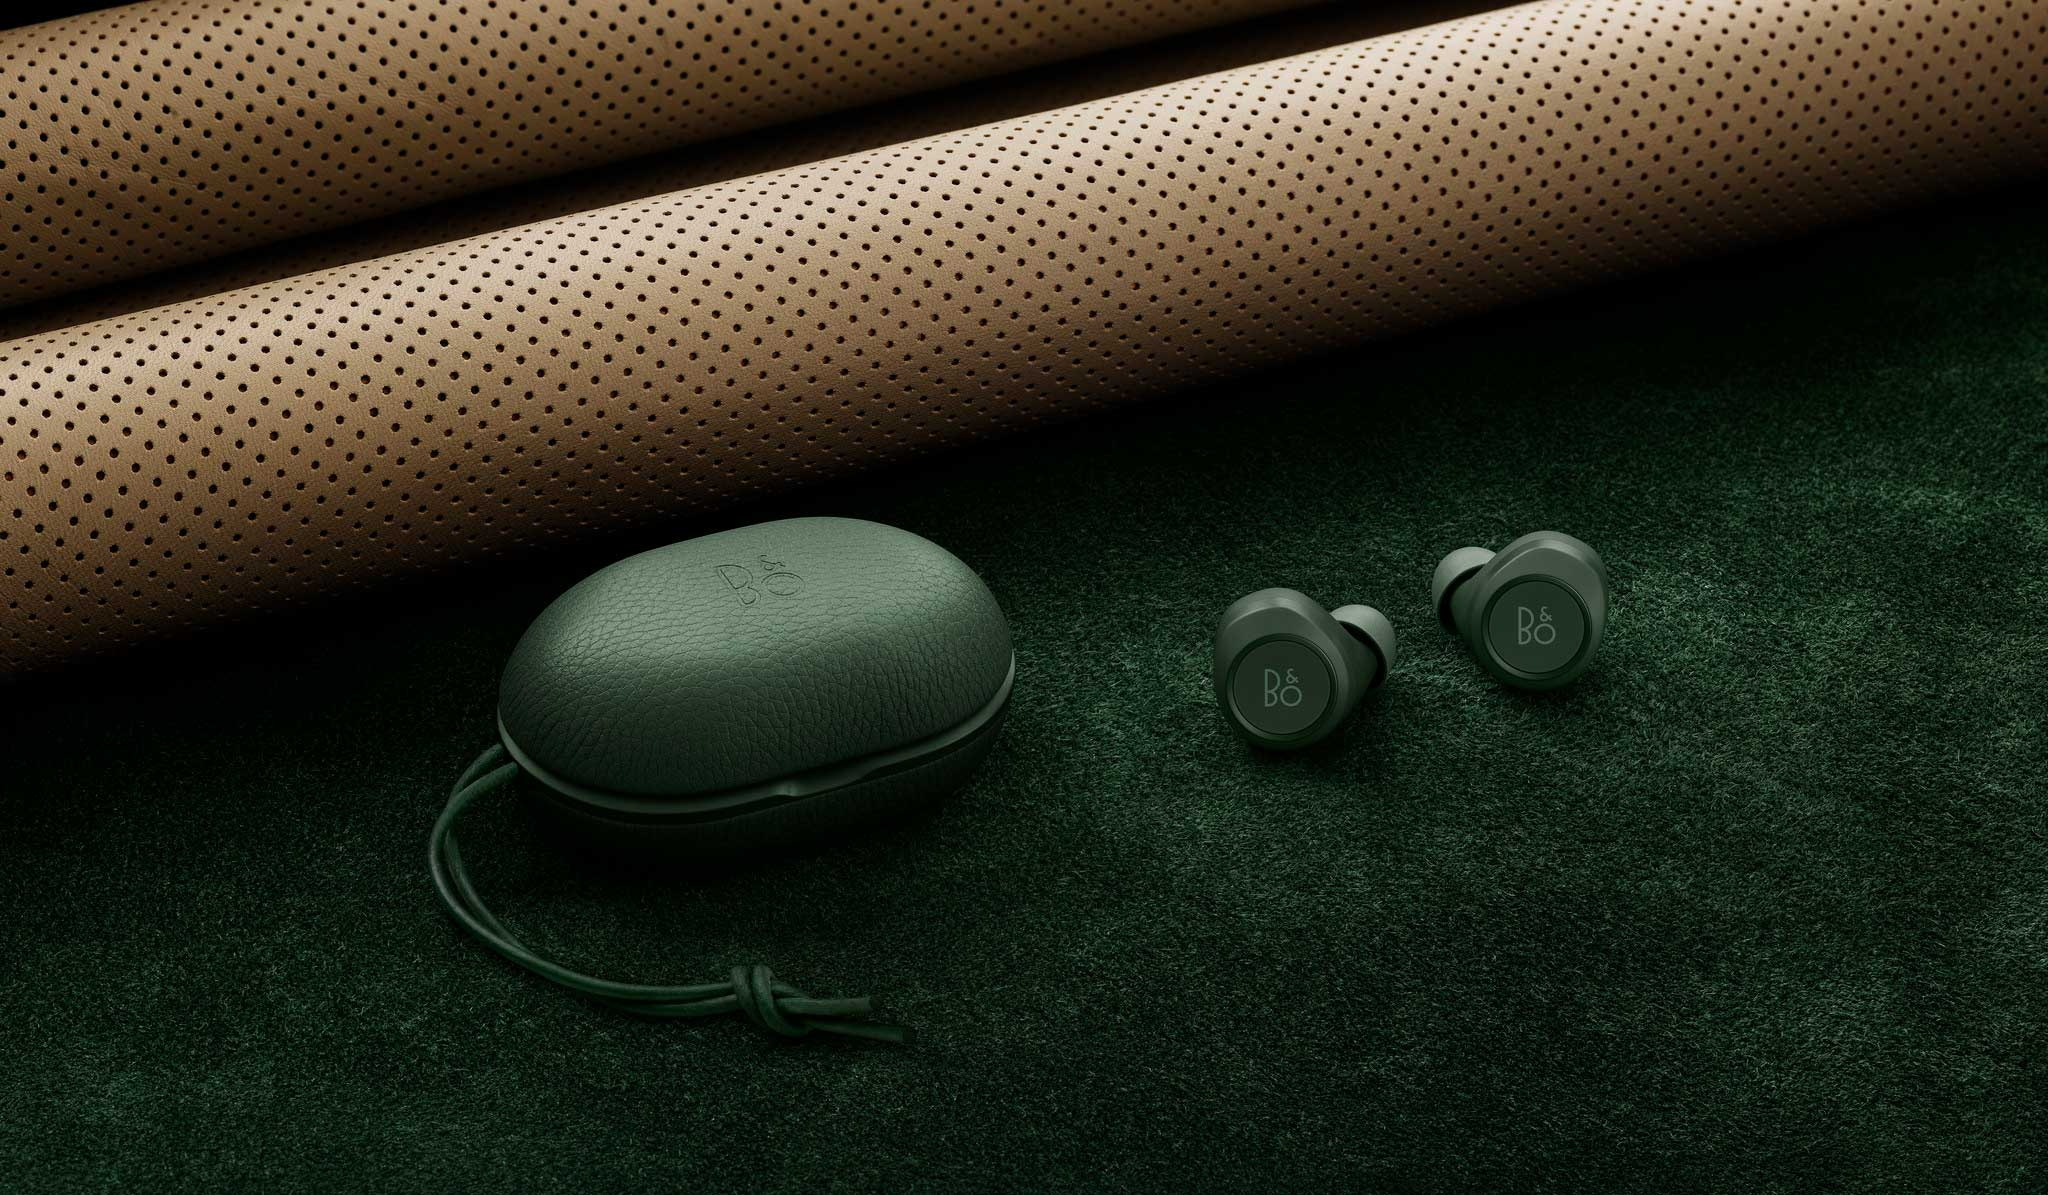 Bang & Olufsen|バング & オルフセン Beoplay E8の限定カラー「Beoplay E8 Racing Green」